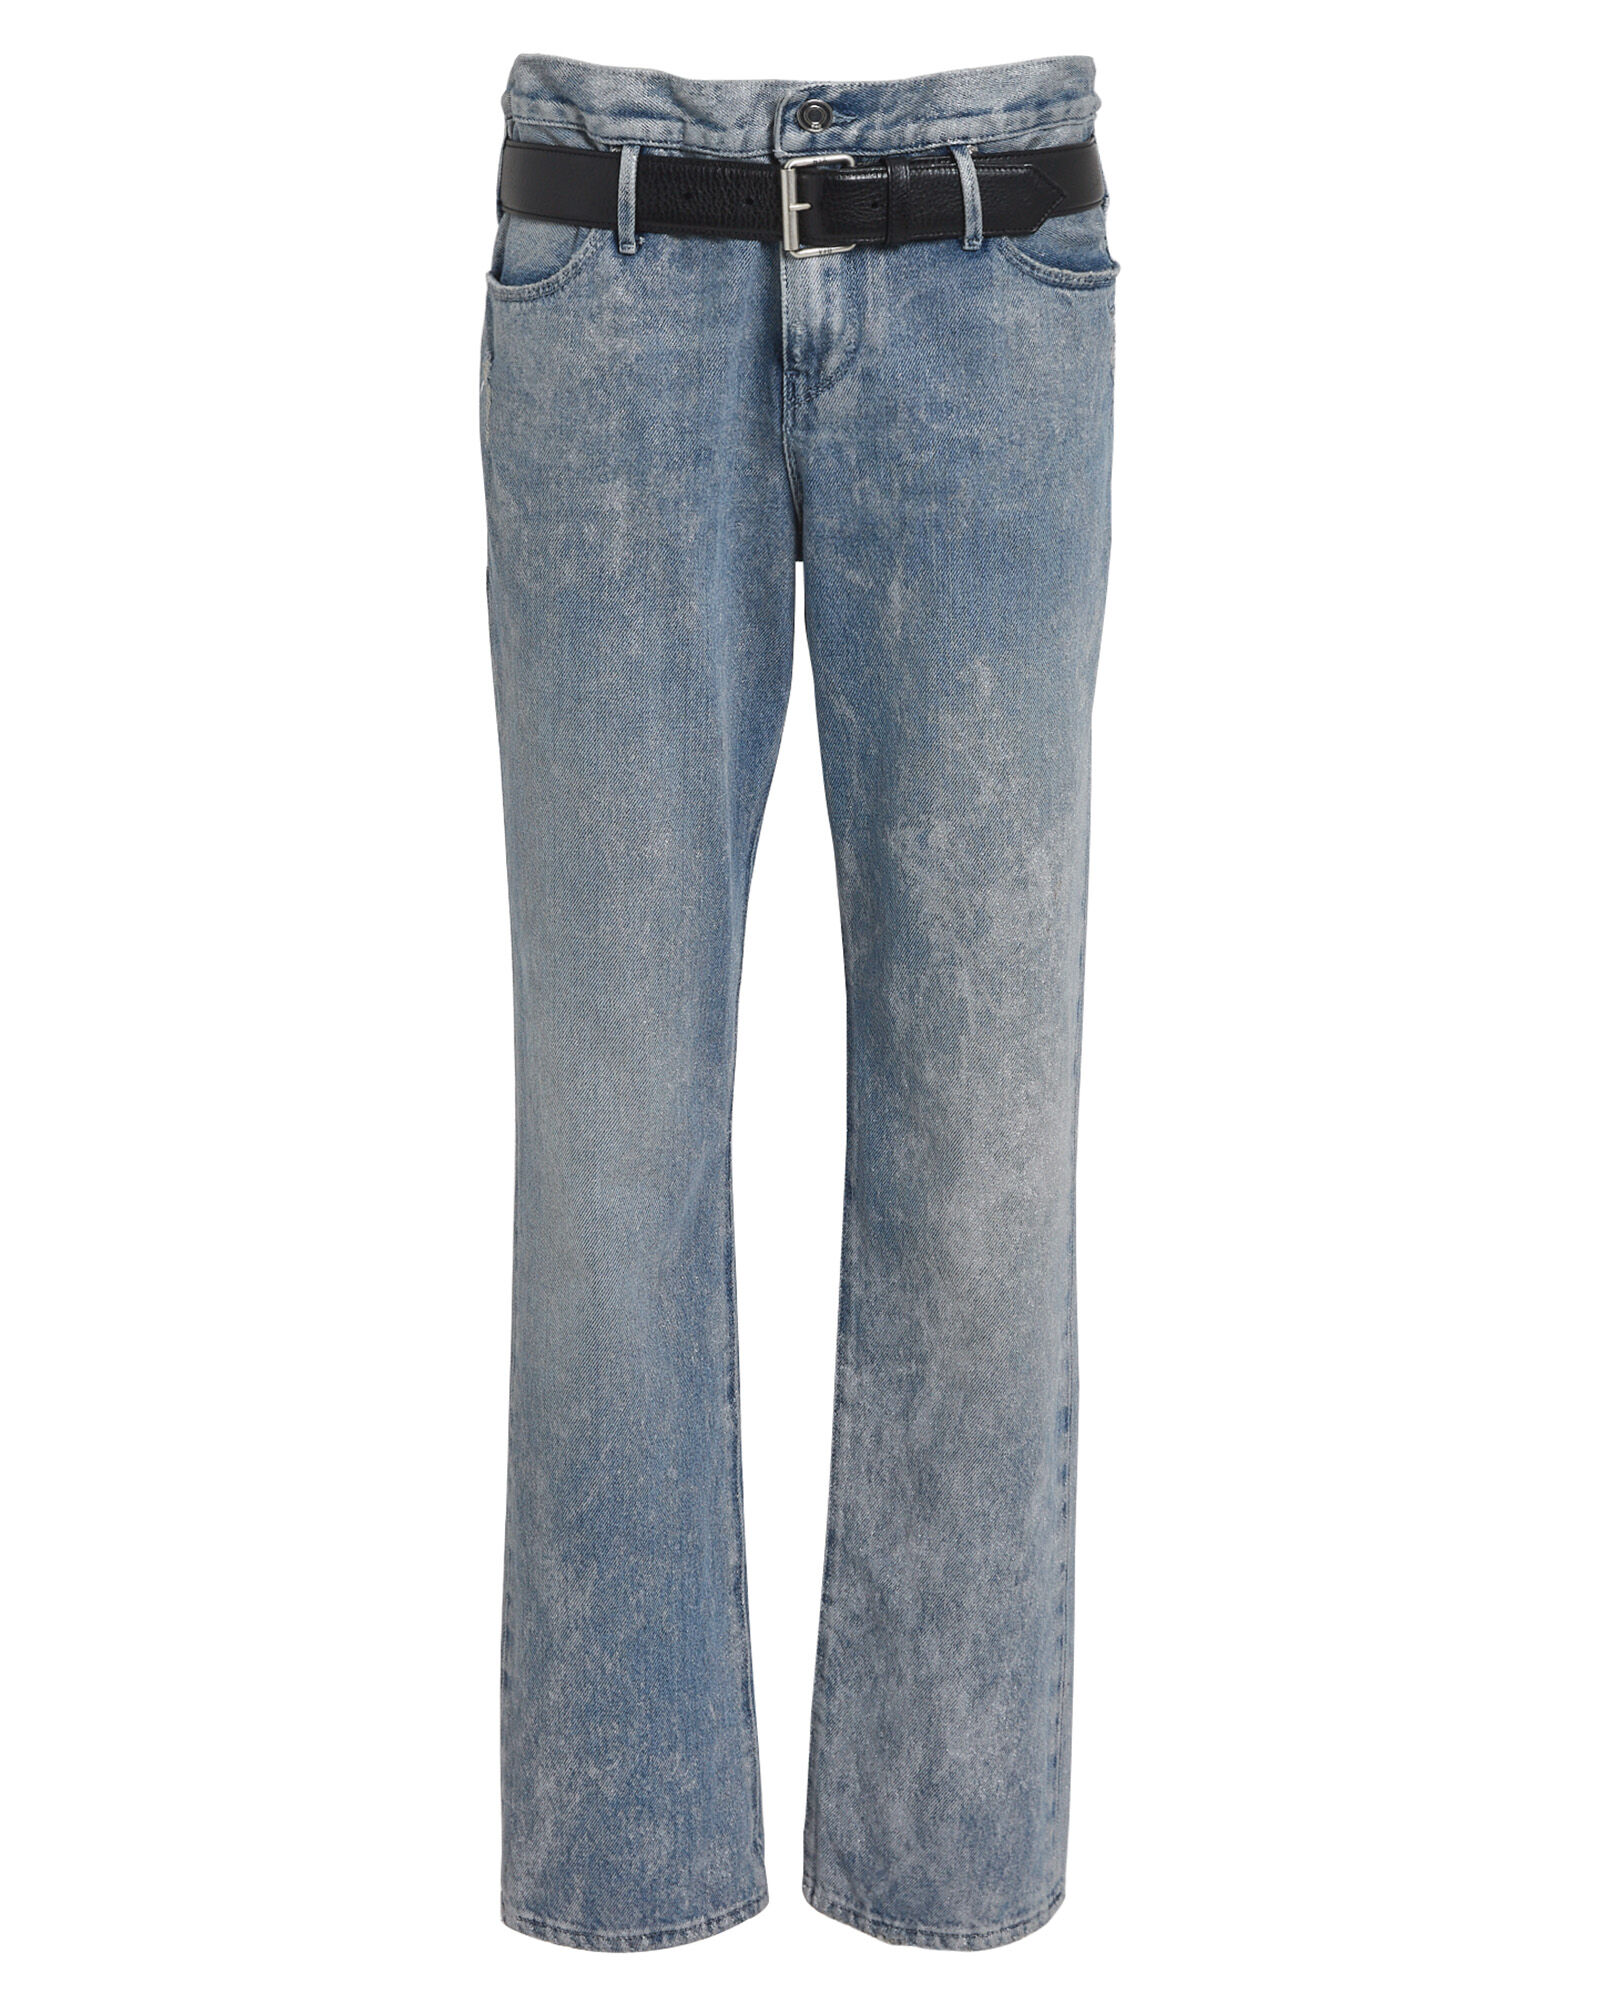 Dexter Half Belt Metallic Jeans, LIGHT WASH DENIM, hi-res